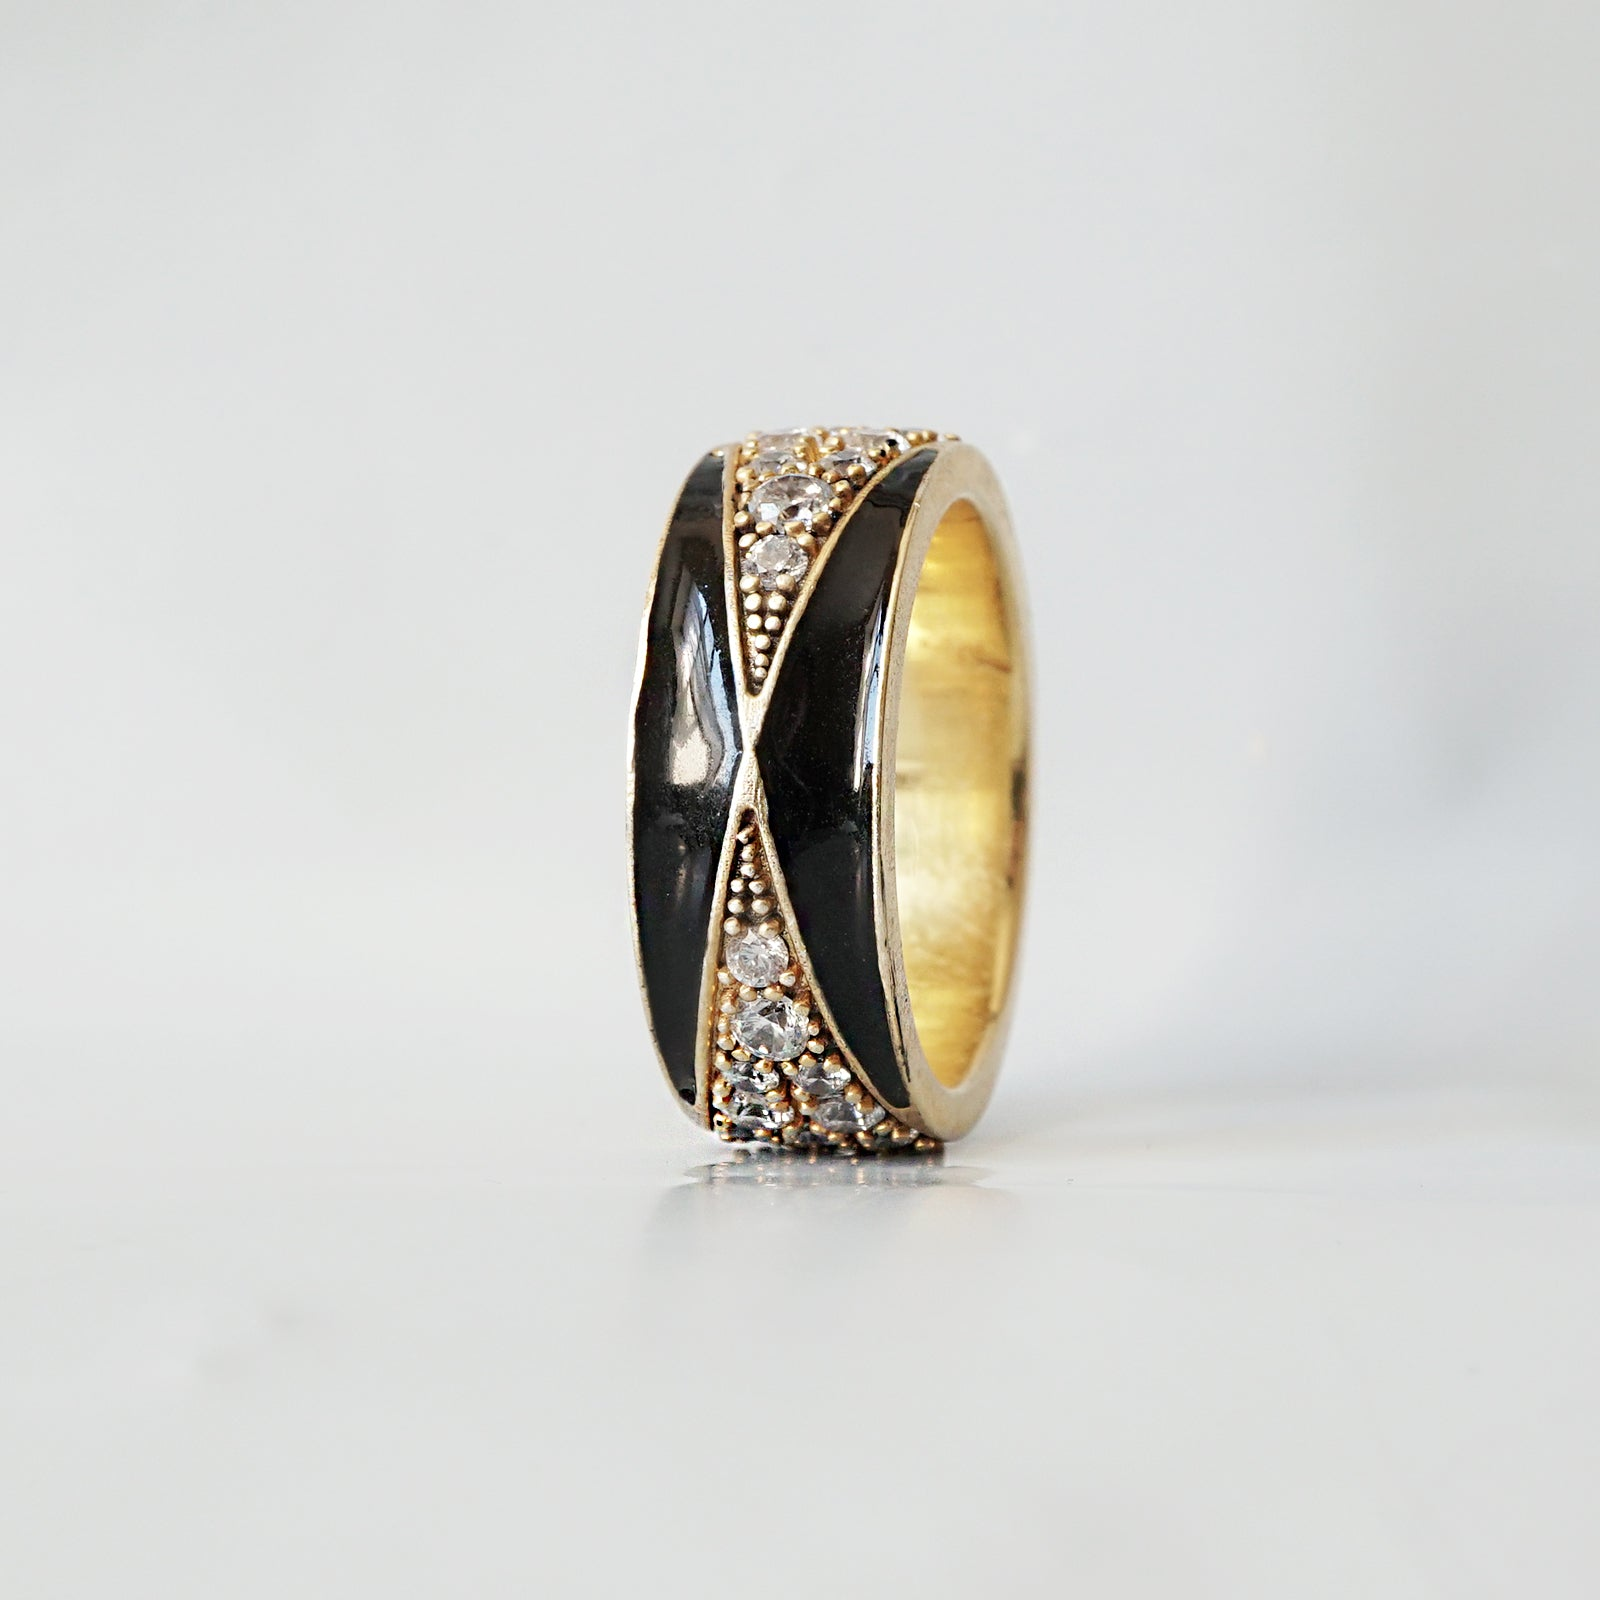 14K Enamel Diamond Ring - Tippy Taste Jewelry